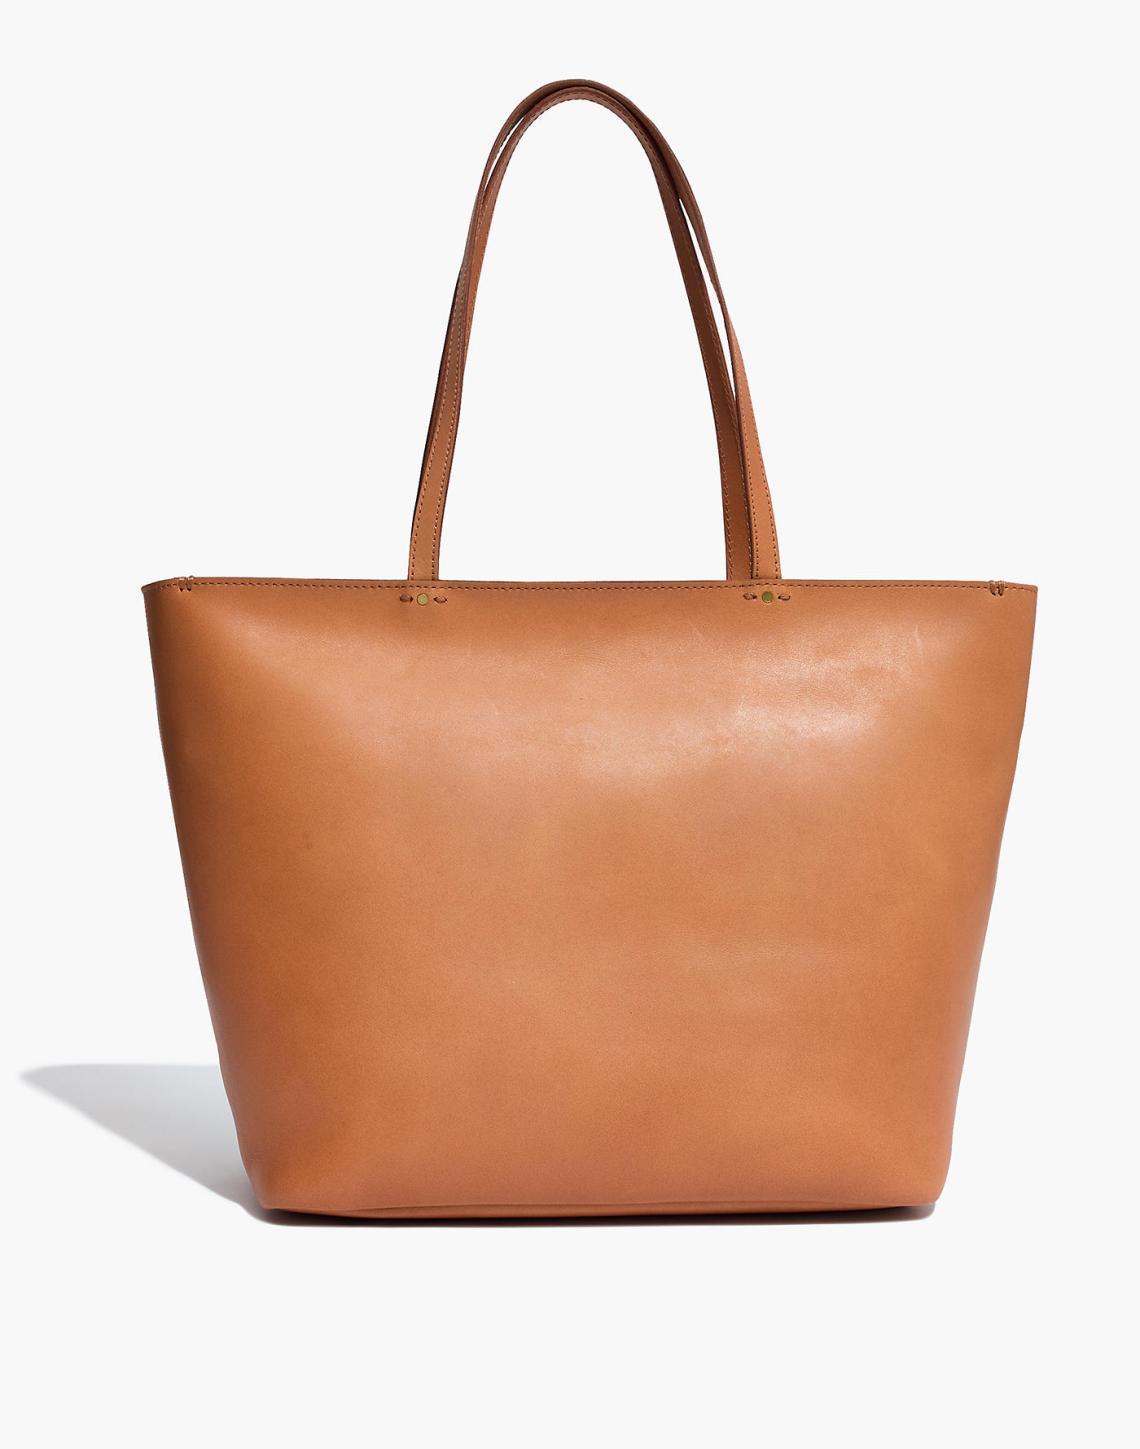 Madewell Abroad Tote